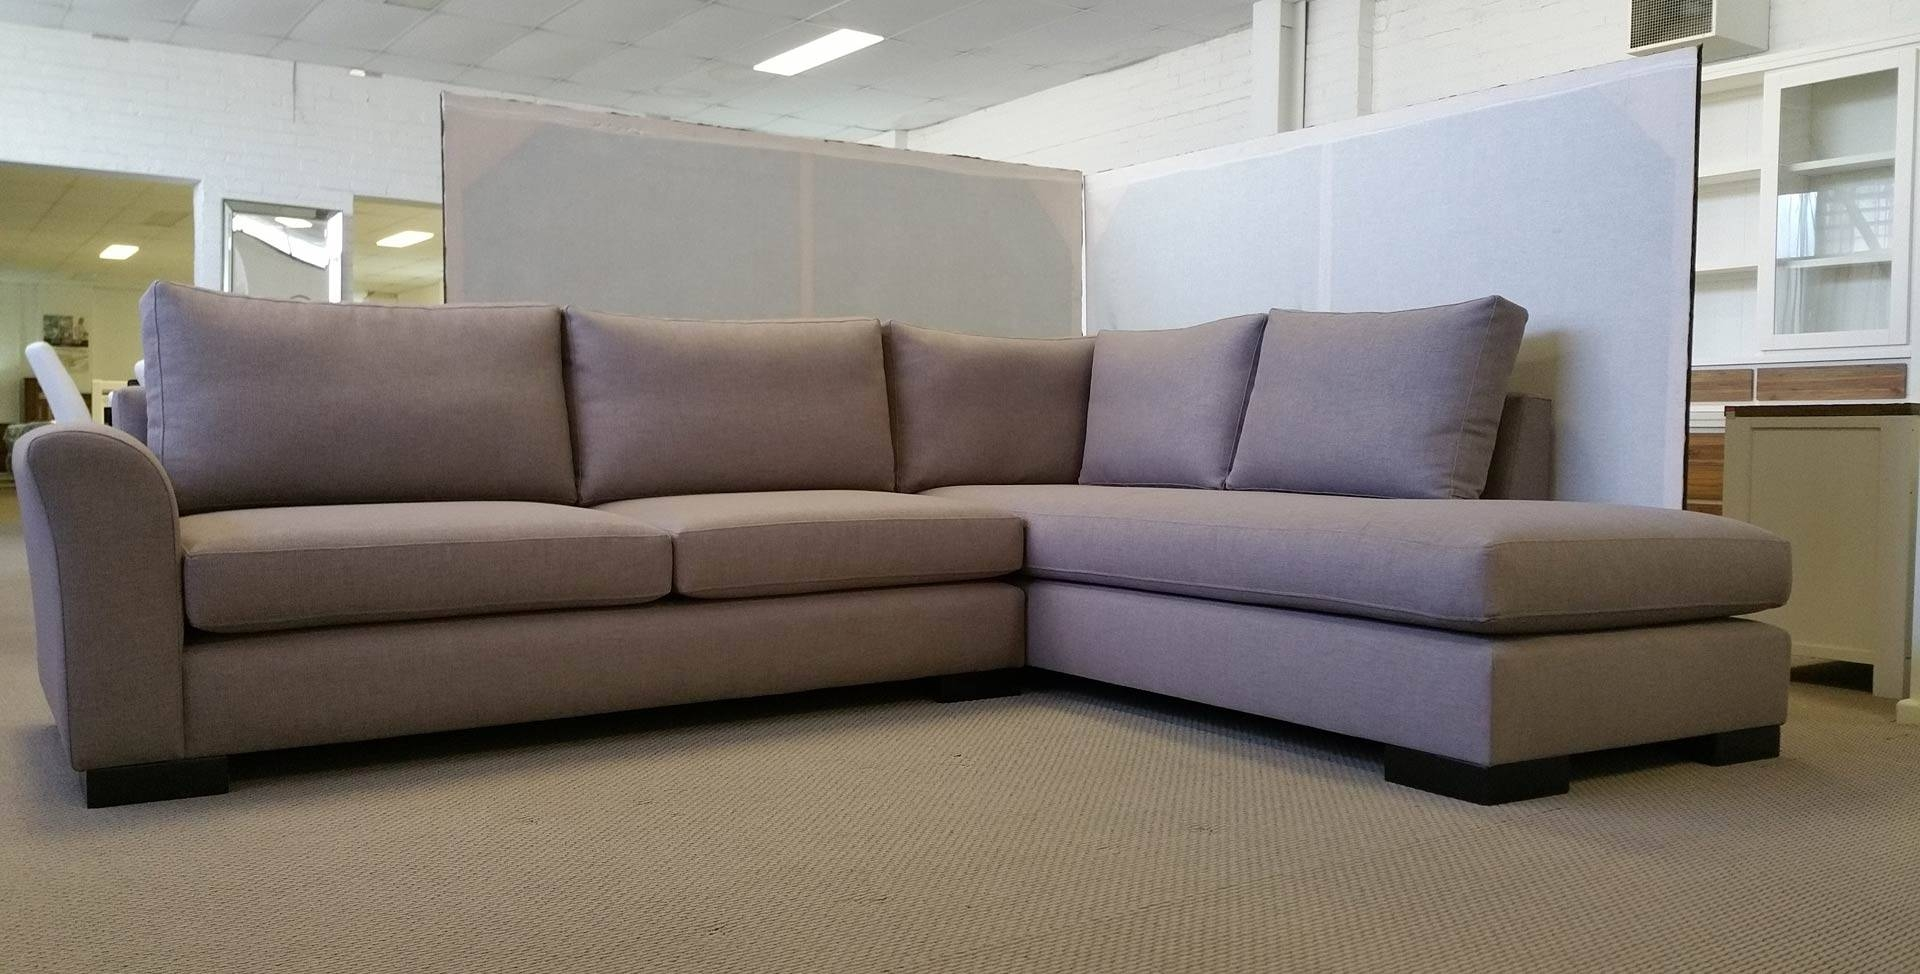 Euro Sofas 93 With Euro Sofas - Bible-Saitama intended for Euro Sofas (Image 9 of 15)